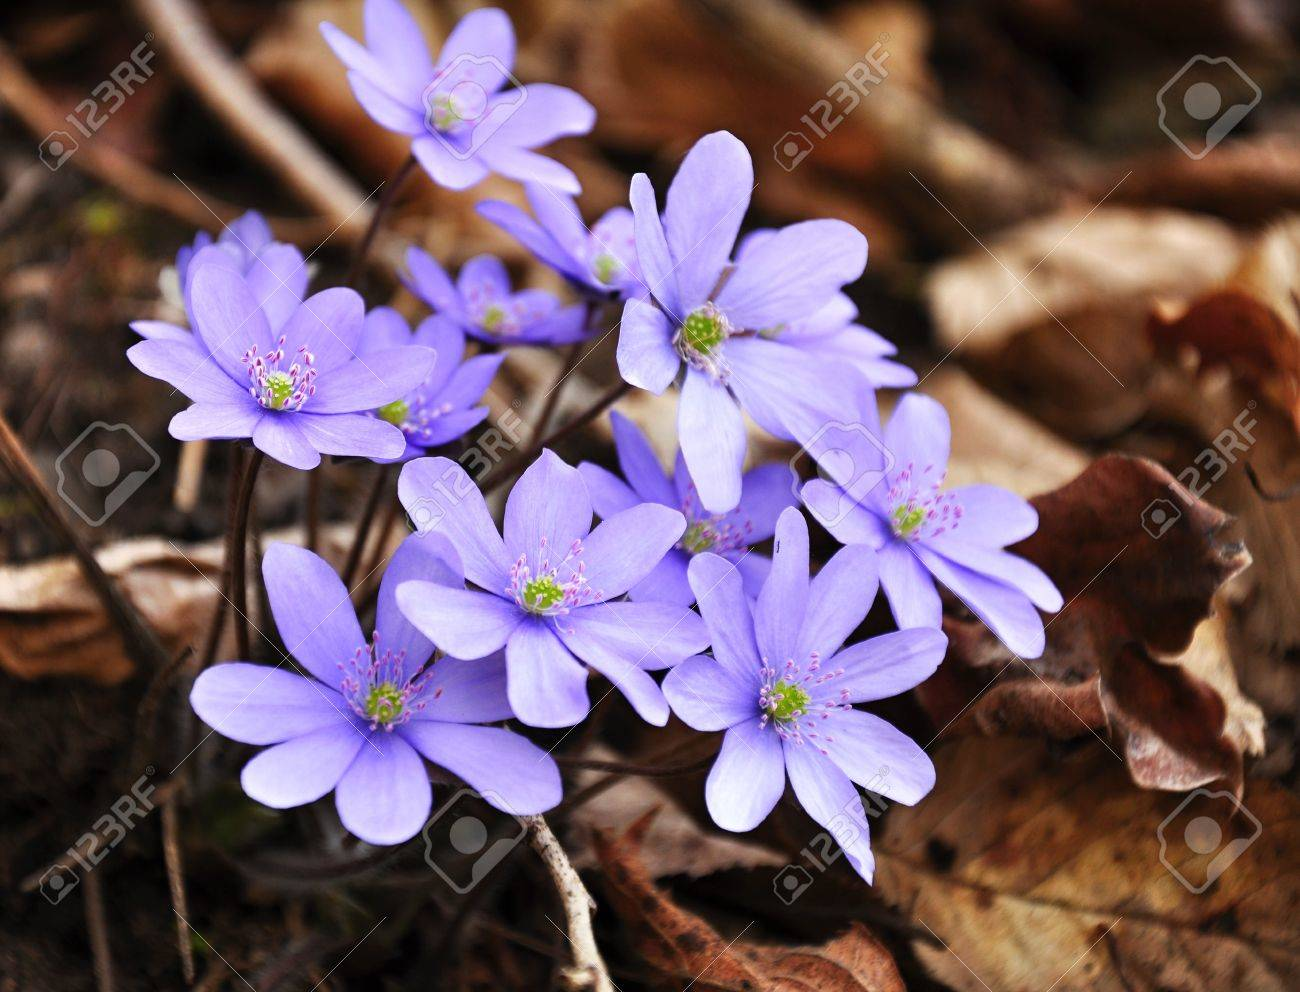 Light Blue Spring Flowers Growing In Early Spring Stock Photo